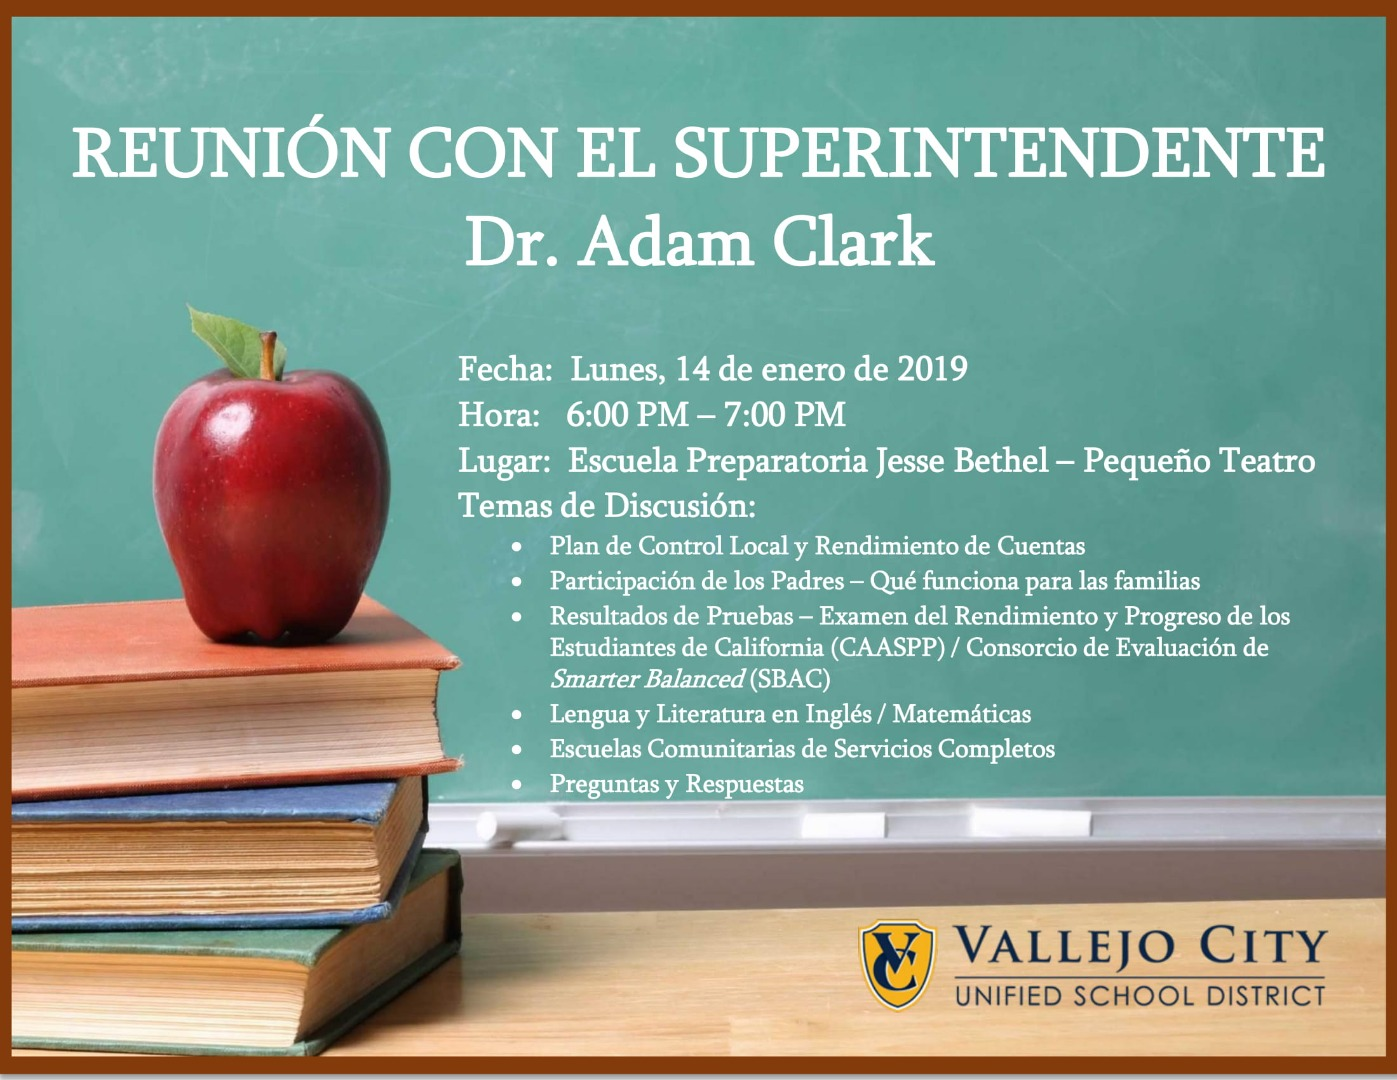 Meeting with Superintendent info in Spanish